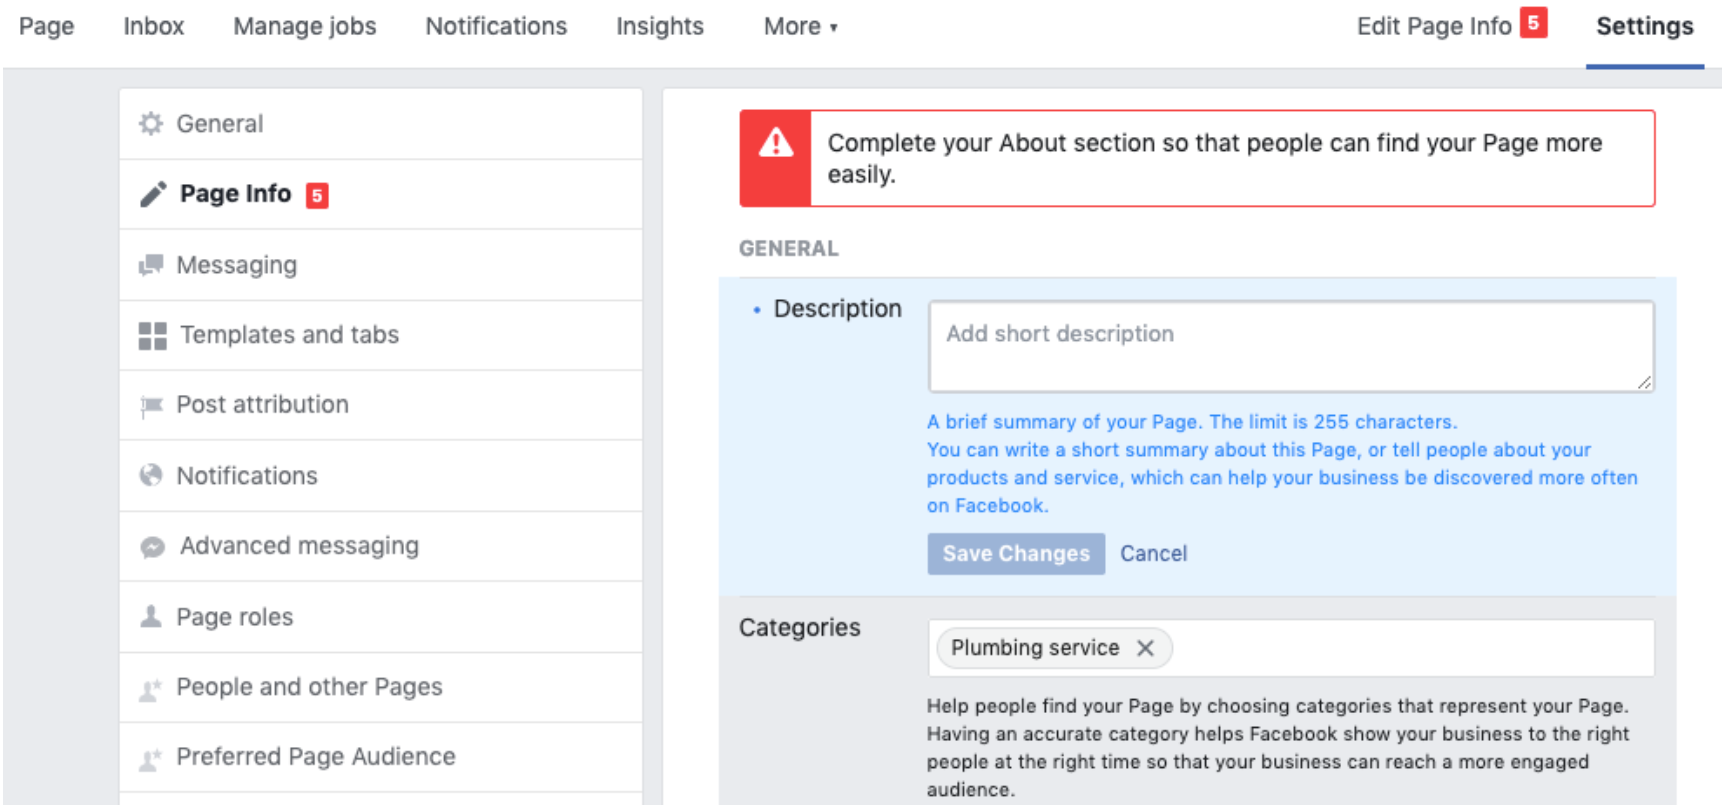 Screenshot of Page Info section on Facebook Business page